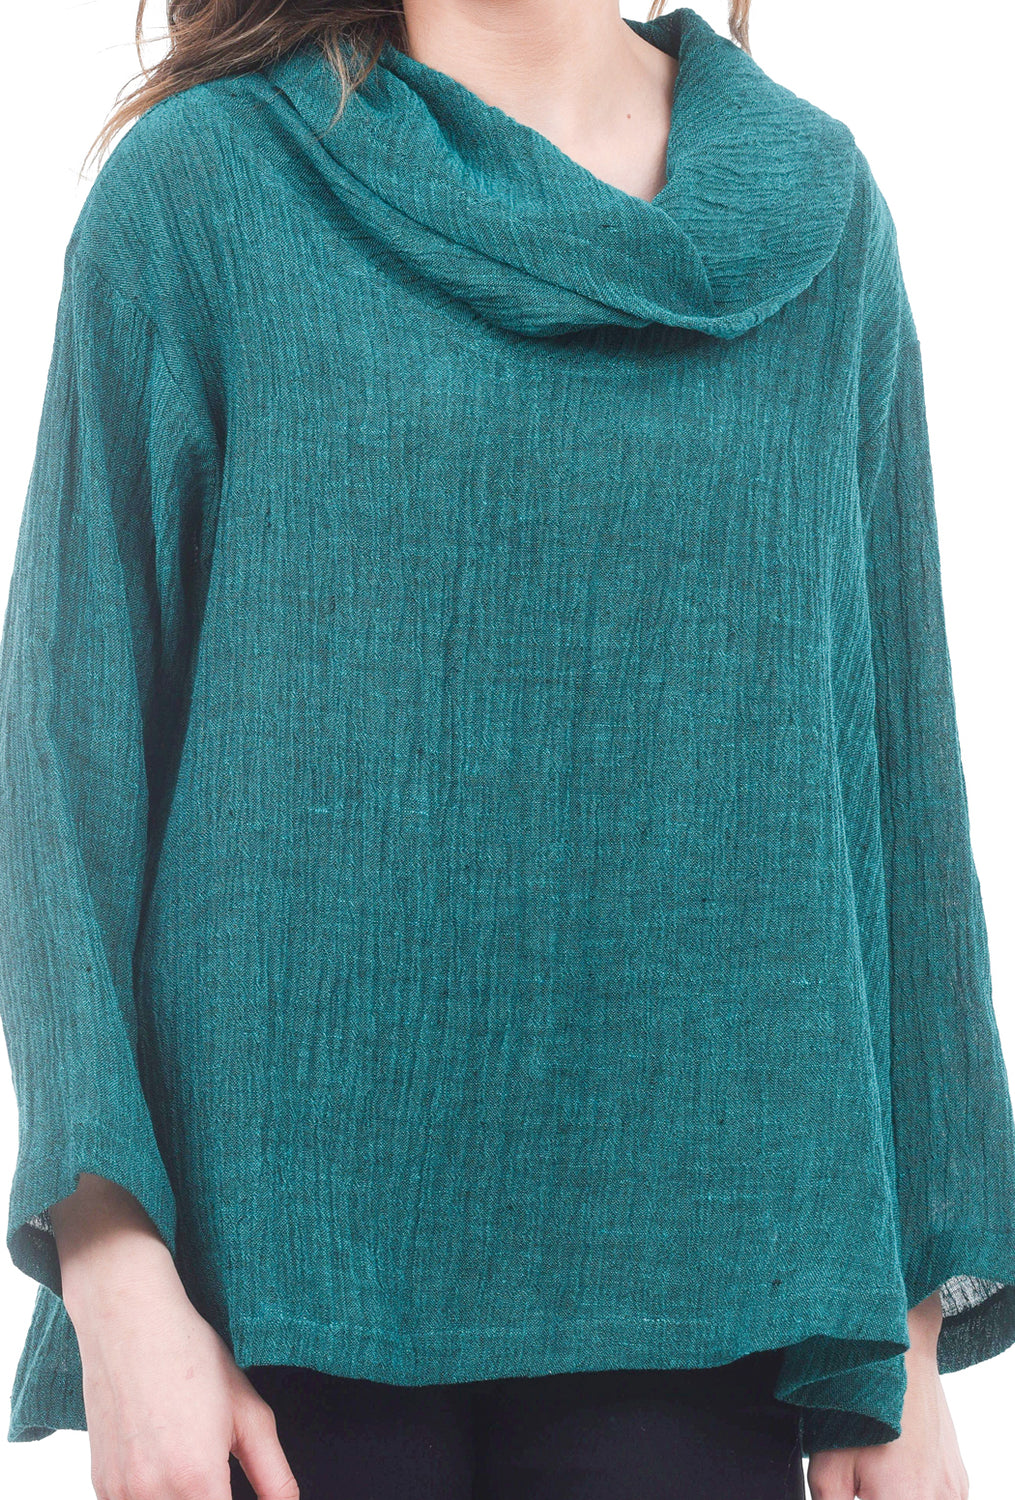 M Square Textured Crop Cowl Top, Emerald Green One Size Green